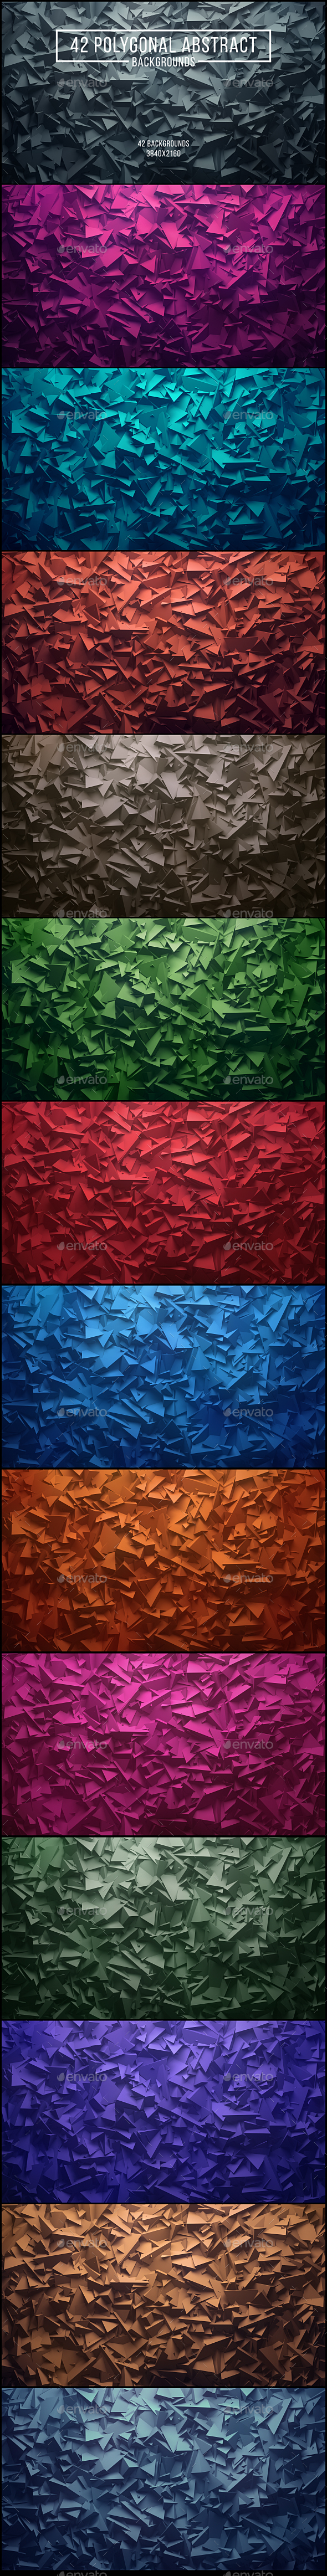 42 Polygonal Abstract Backgrounds - Abstract Backgrounds